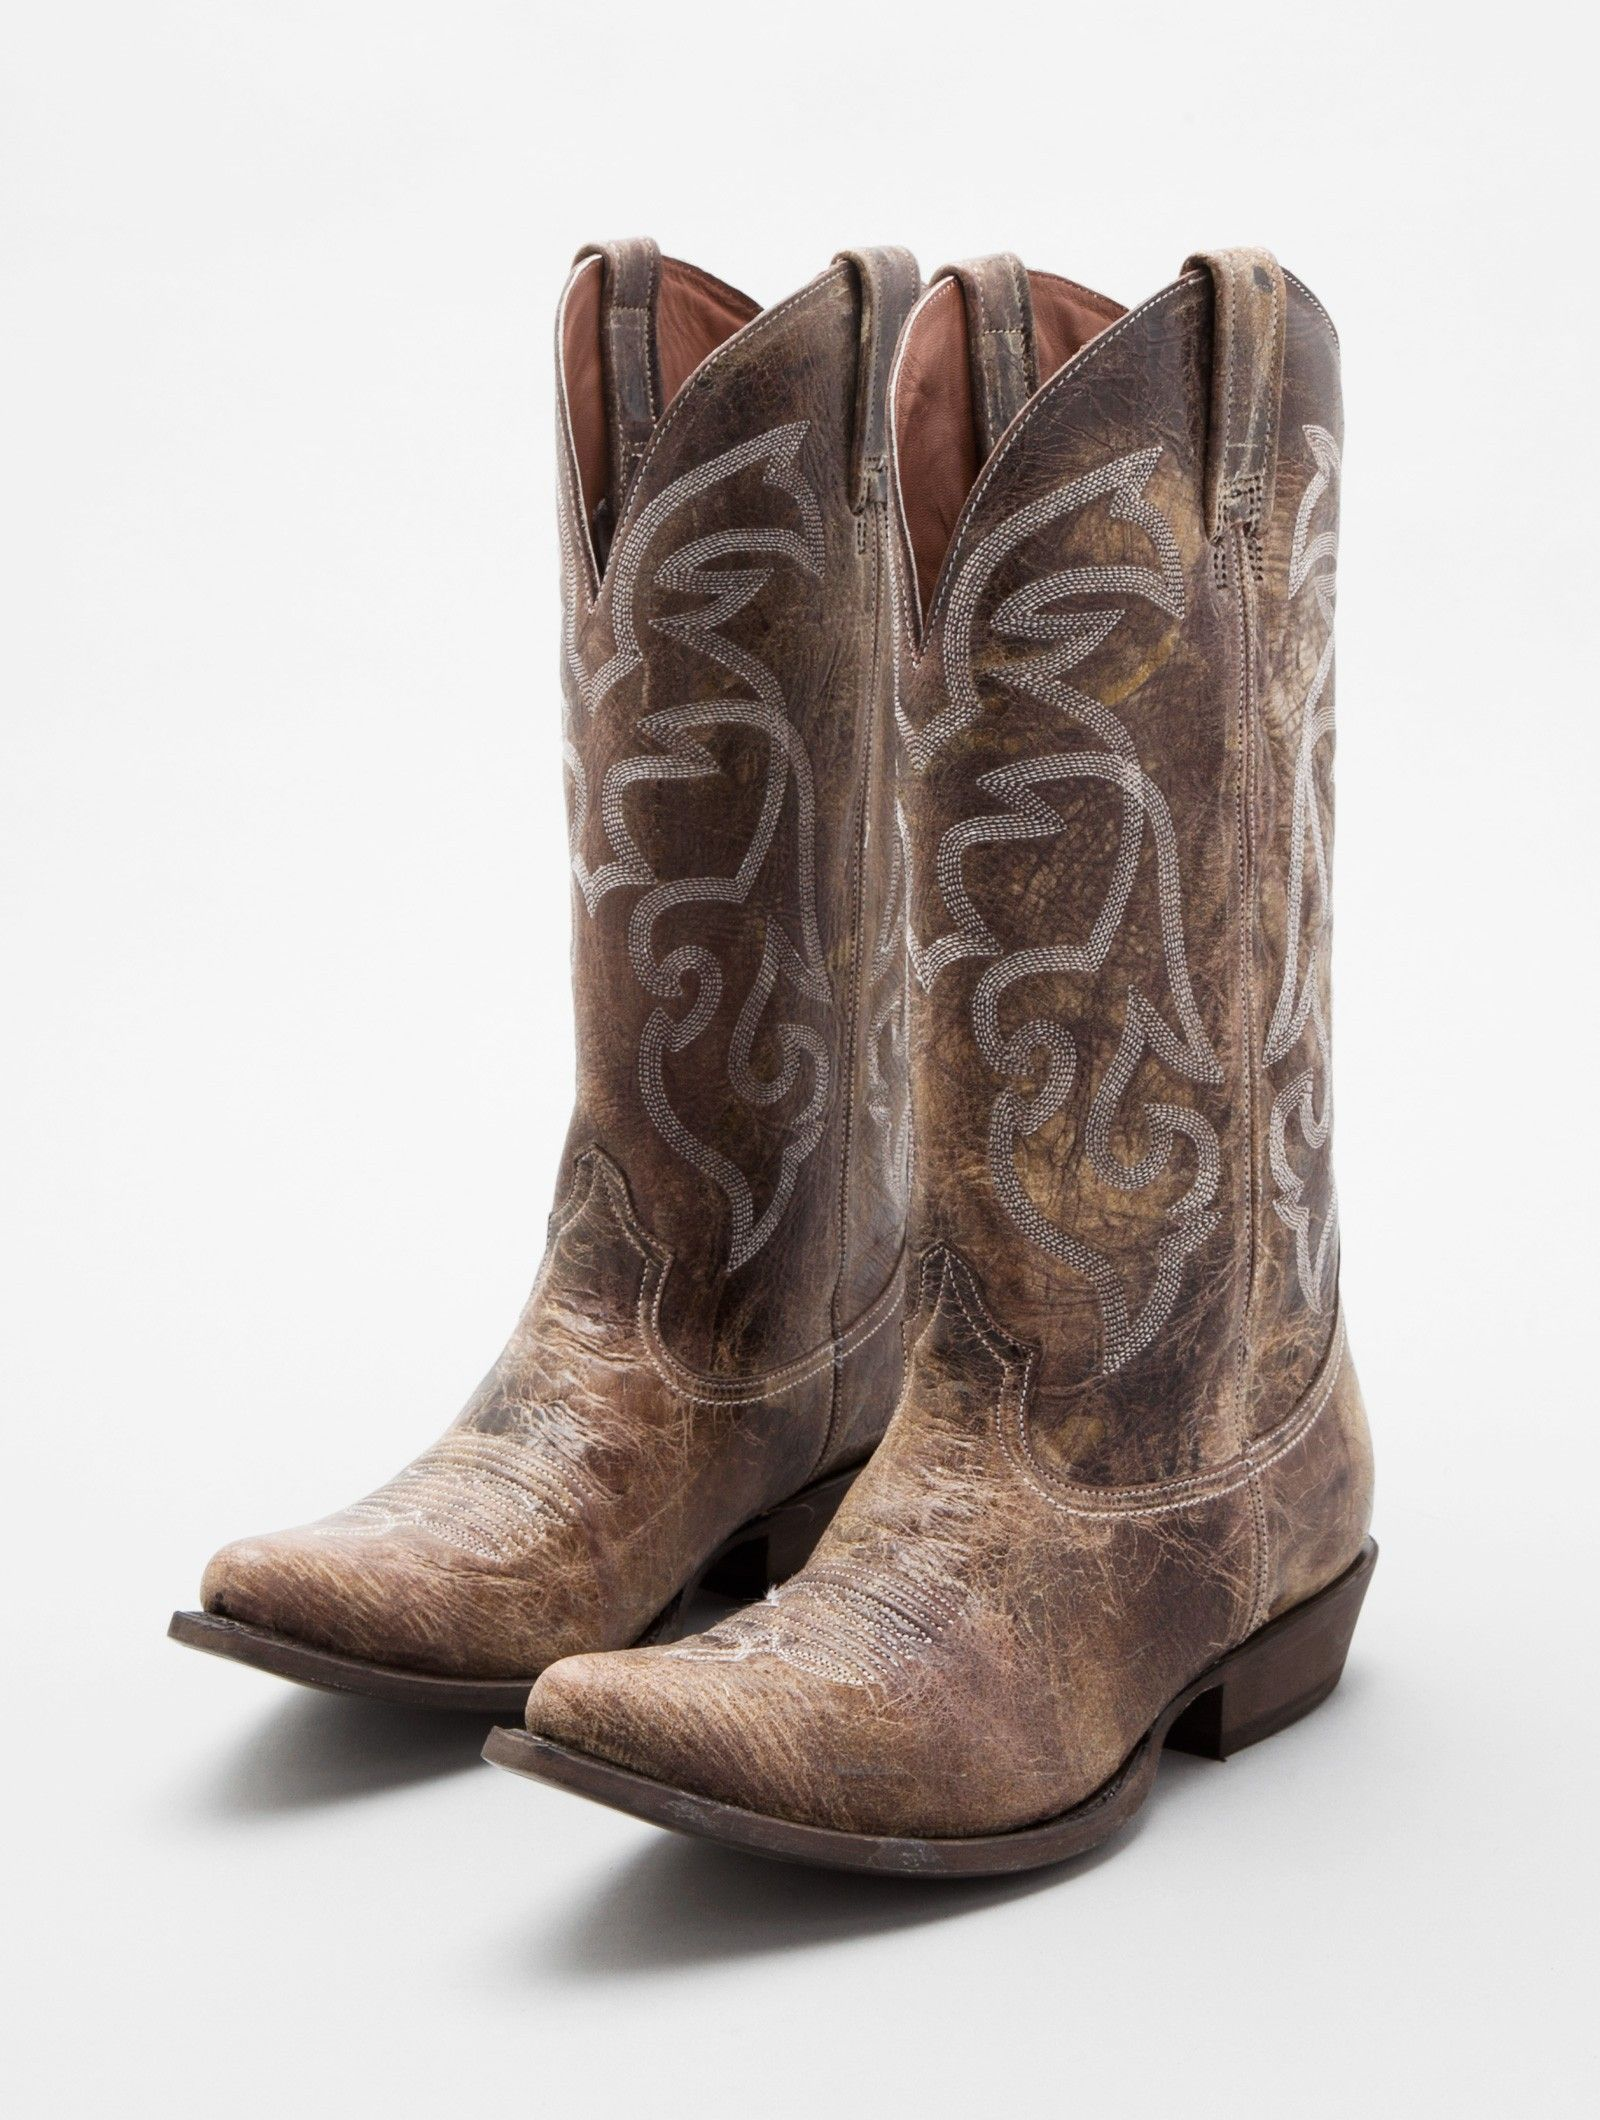 Tombstone Cowboy Boots By Matisse Get In My Closet